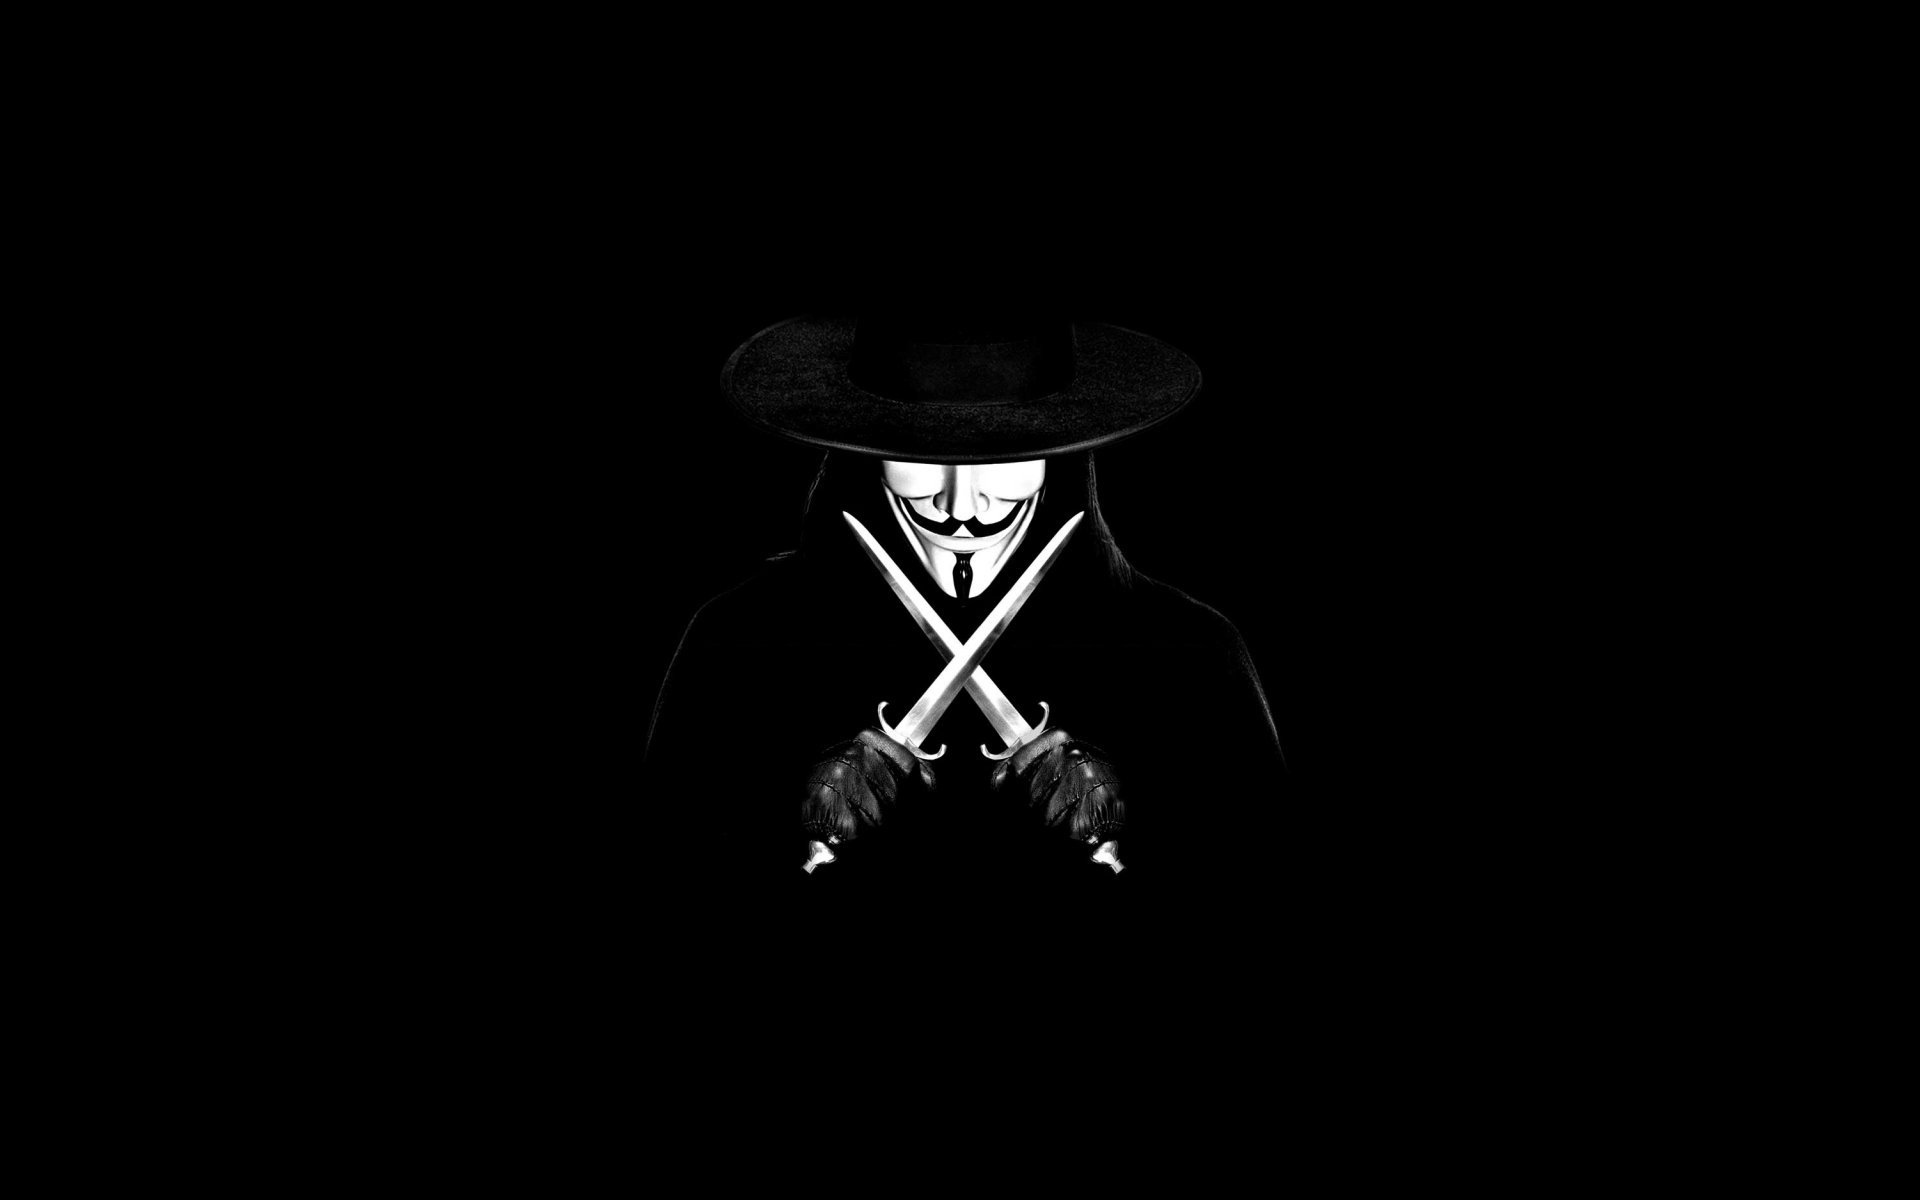 v for vendetta full hd fond d'écran and arrière-plan | 1920x1200